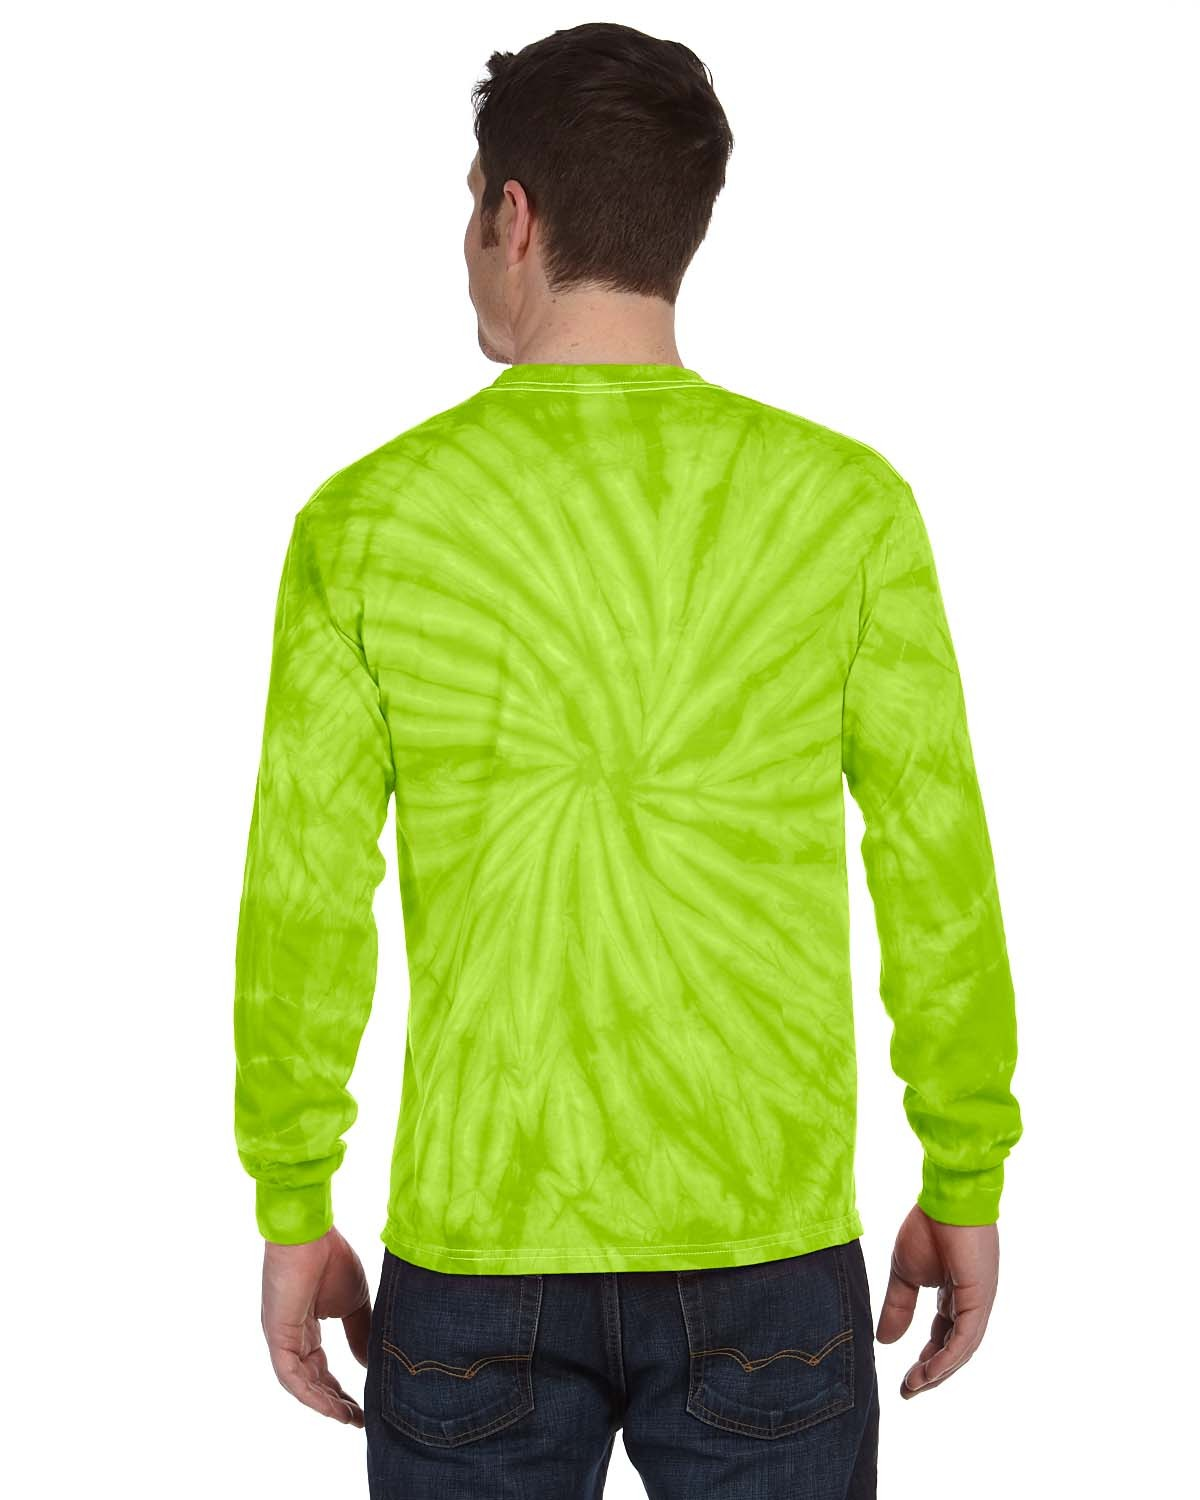 CD2000 Tie-Dye SPIDER LIME